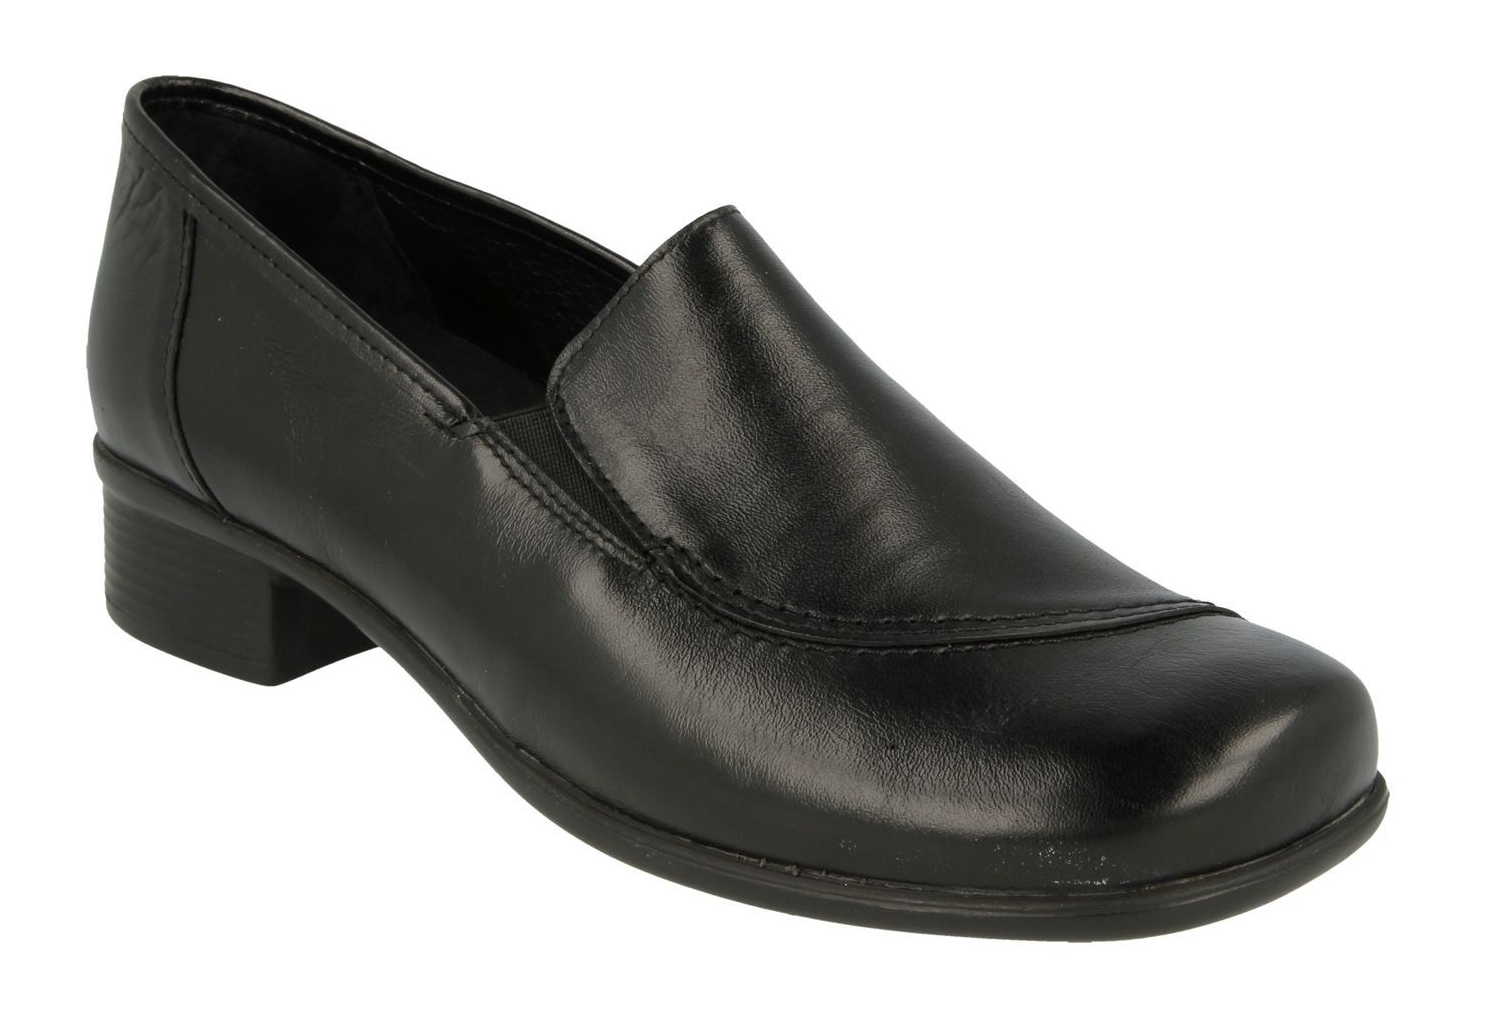 Db shoes Womens Prague Slip On Loafers Wide Fitting shoes - EV Width (1E - 3E)